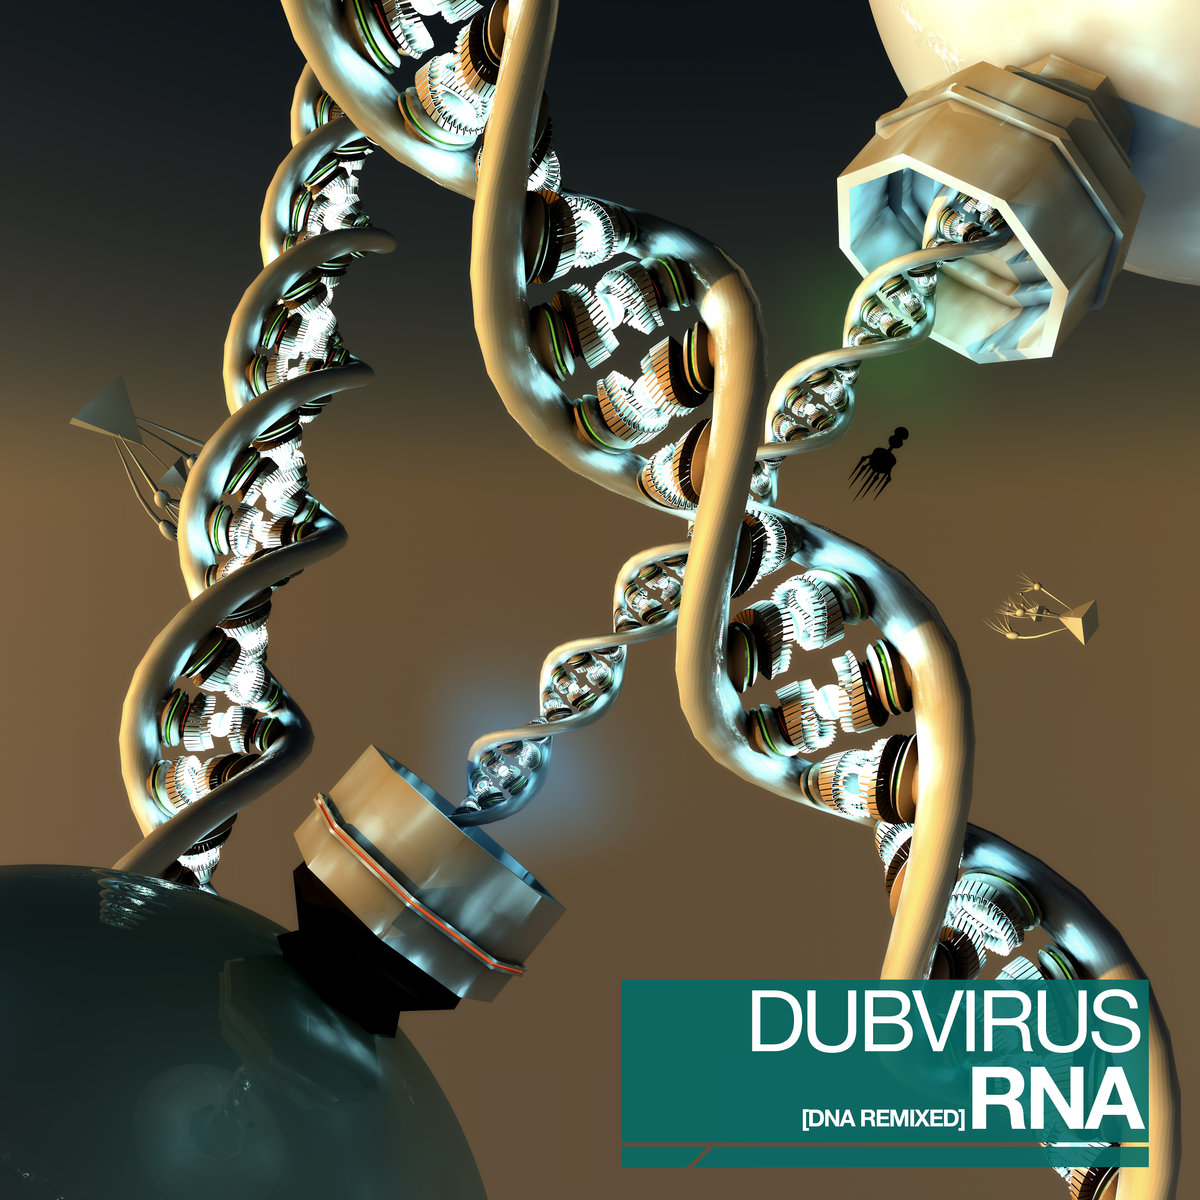 Dubvirus - Source (kLL sMTH Remix) @ 'RNA (DNA Remixed)' album (bass, dubvirus)